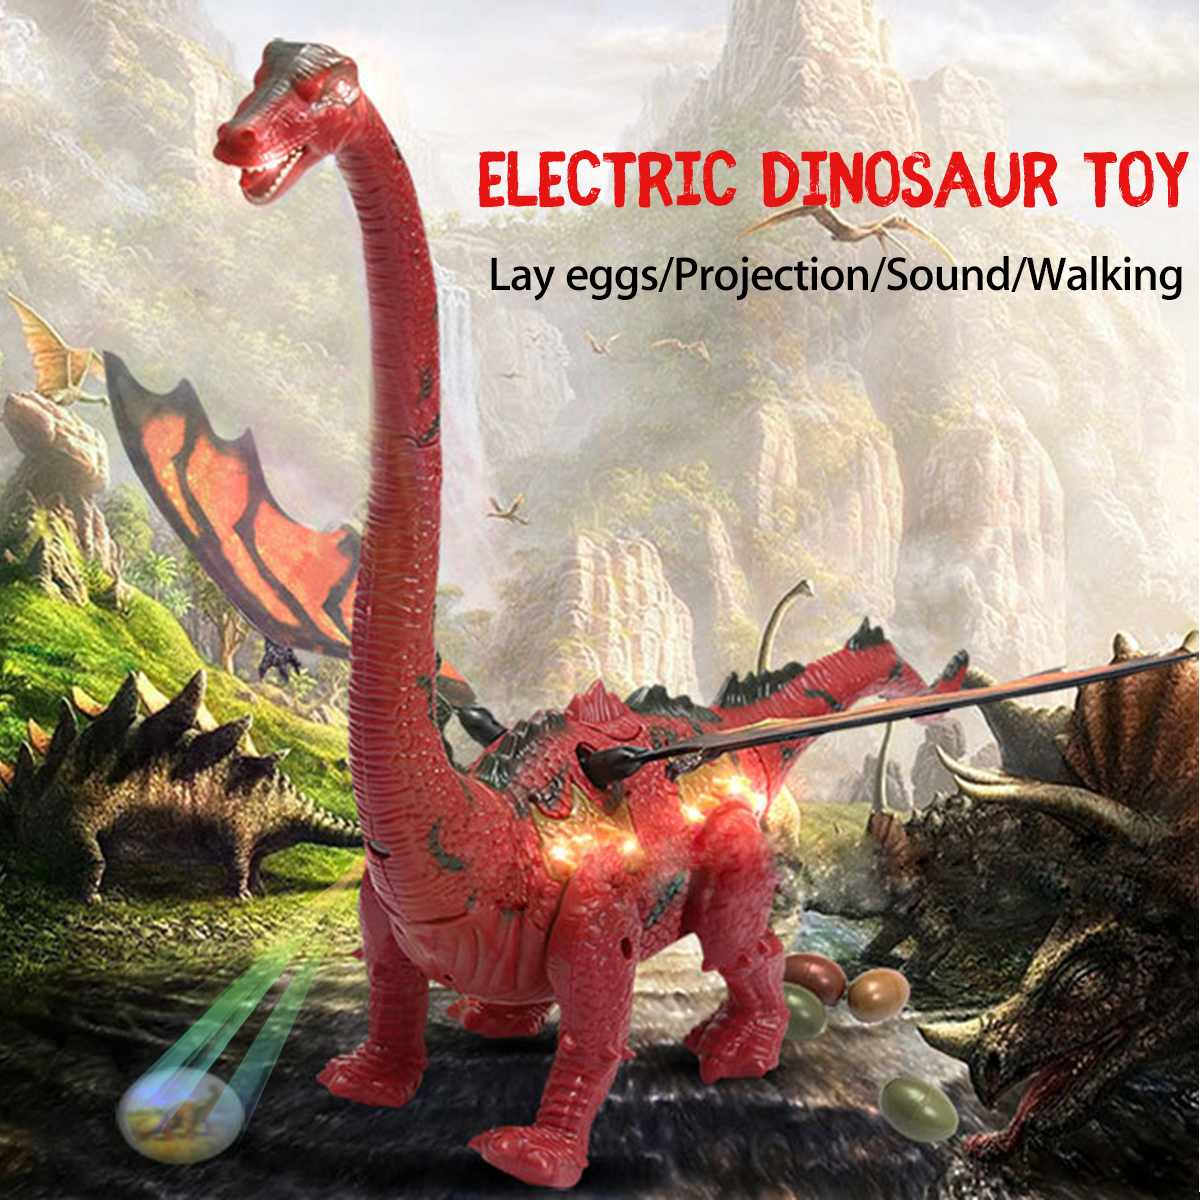 Electric Walking Dinosaur Toy Lay Eggs Projection Lights Roar Sounds Kids Gifts